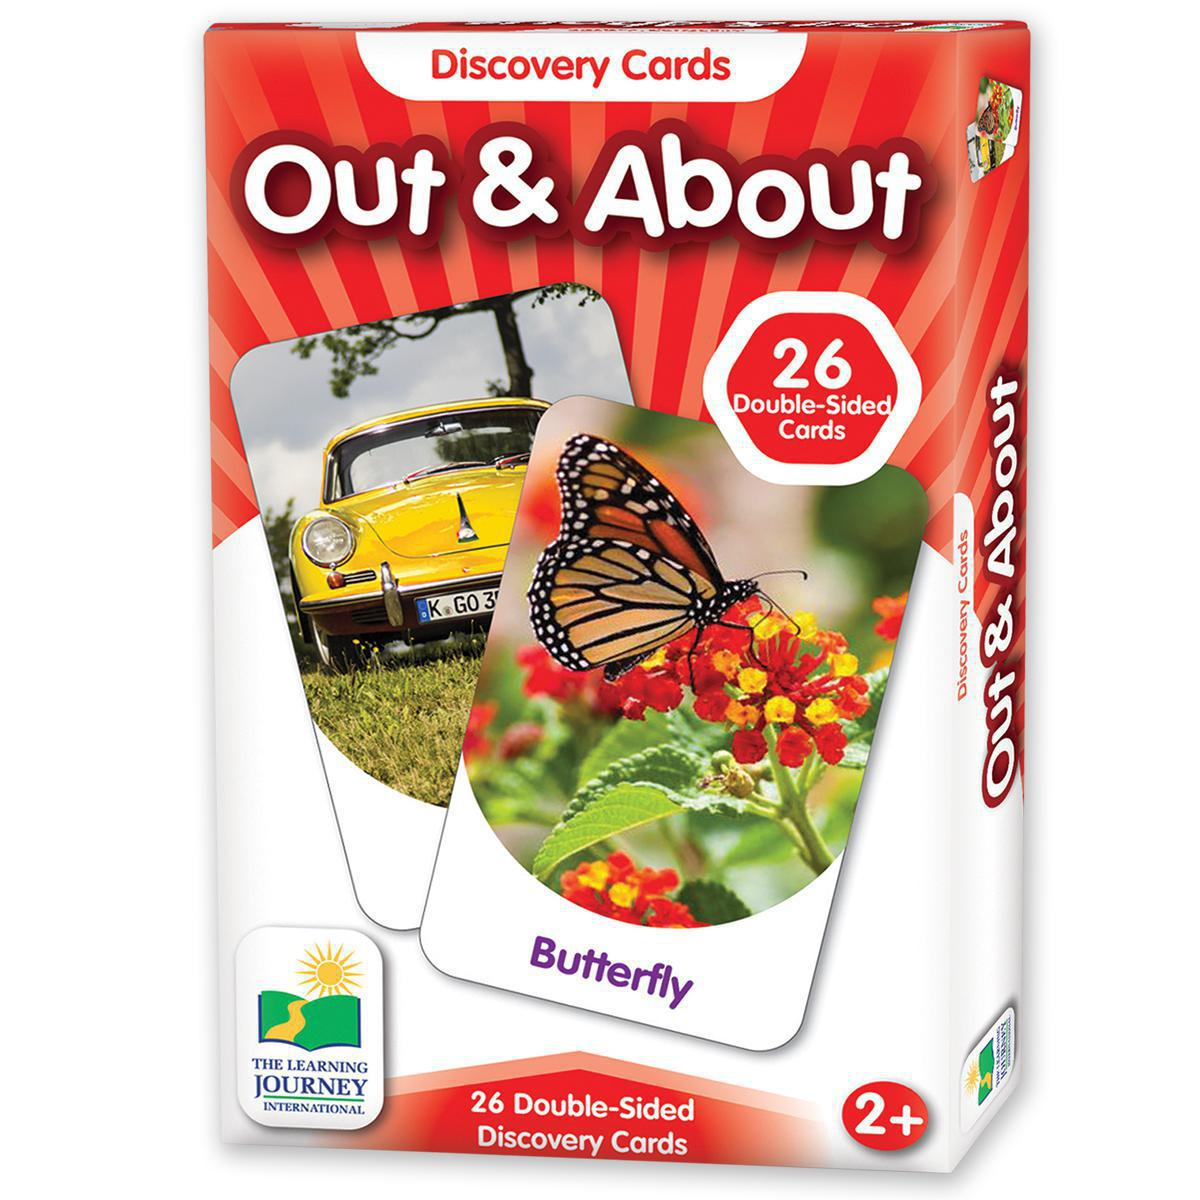 Out & About Discovery Cards